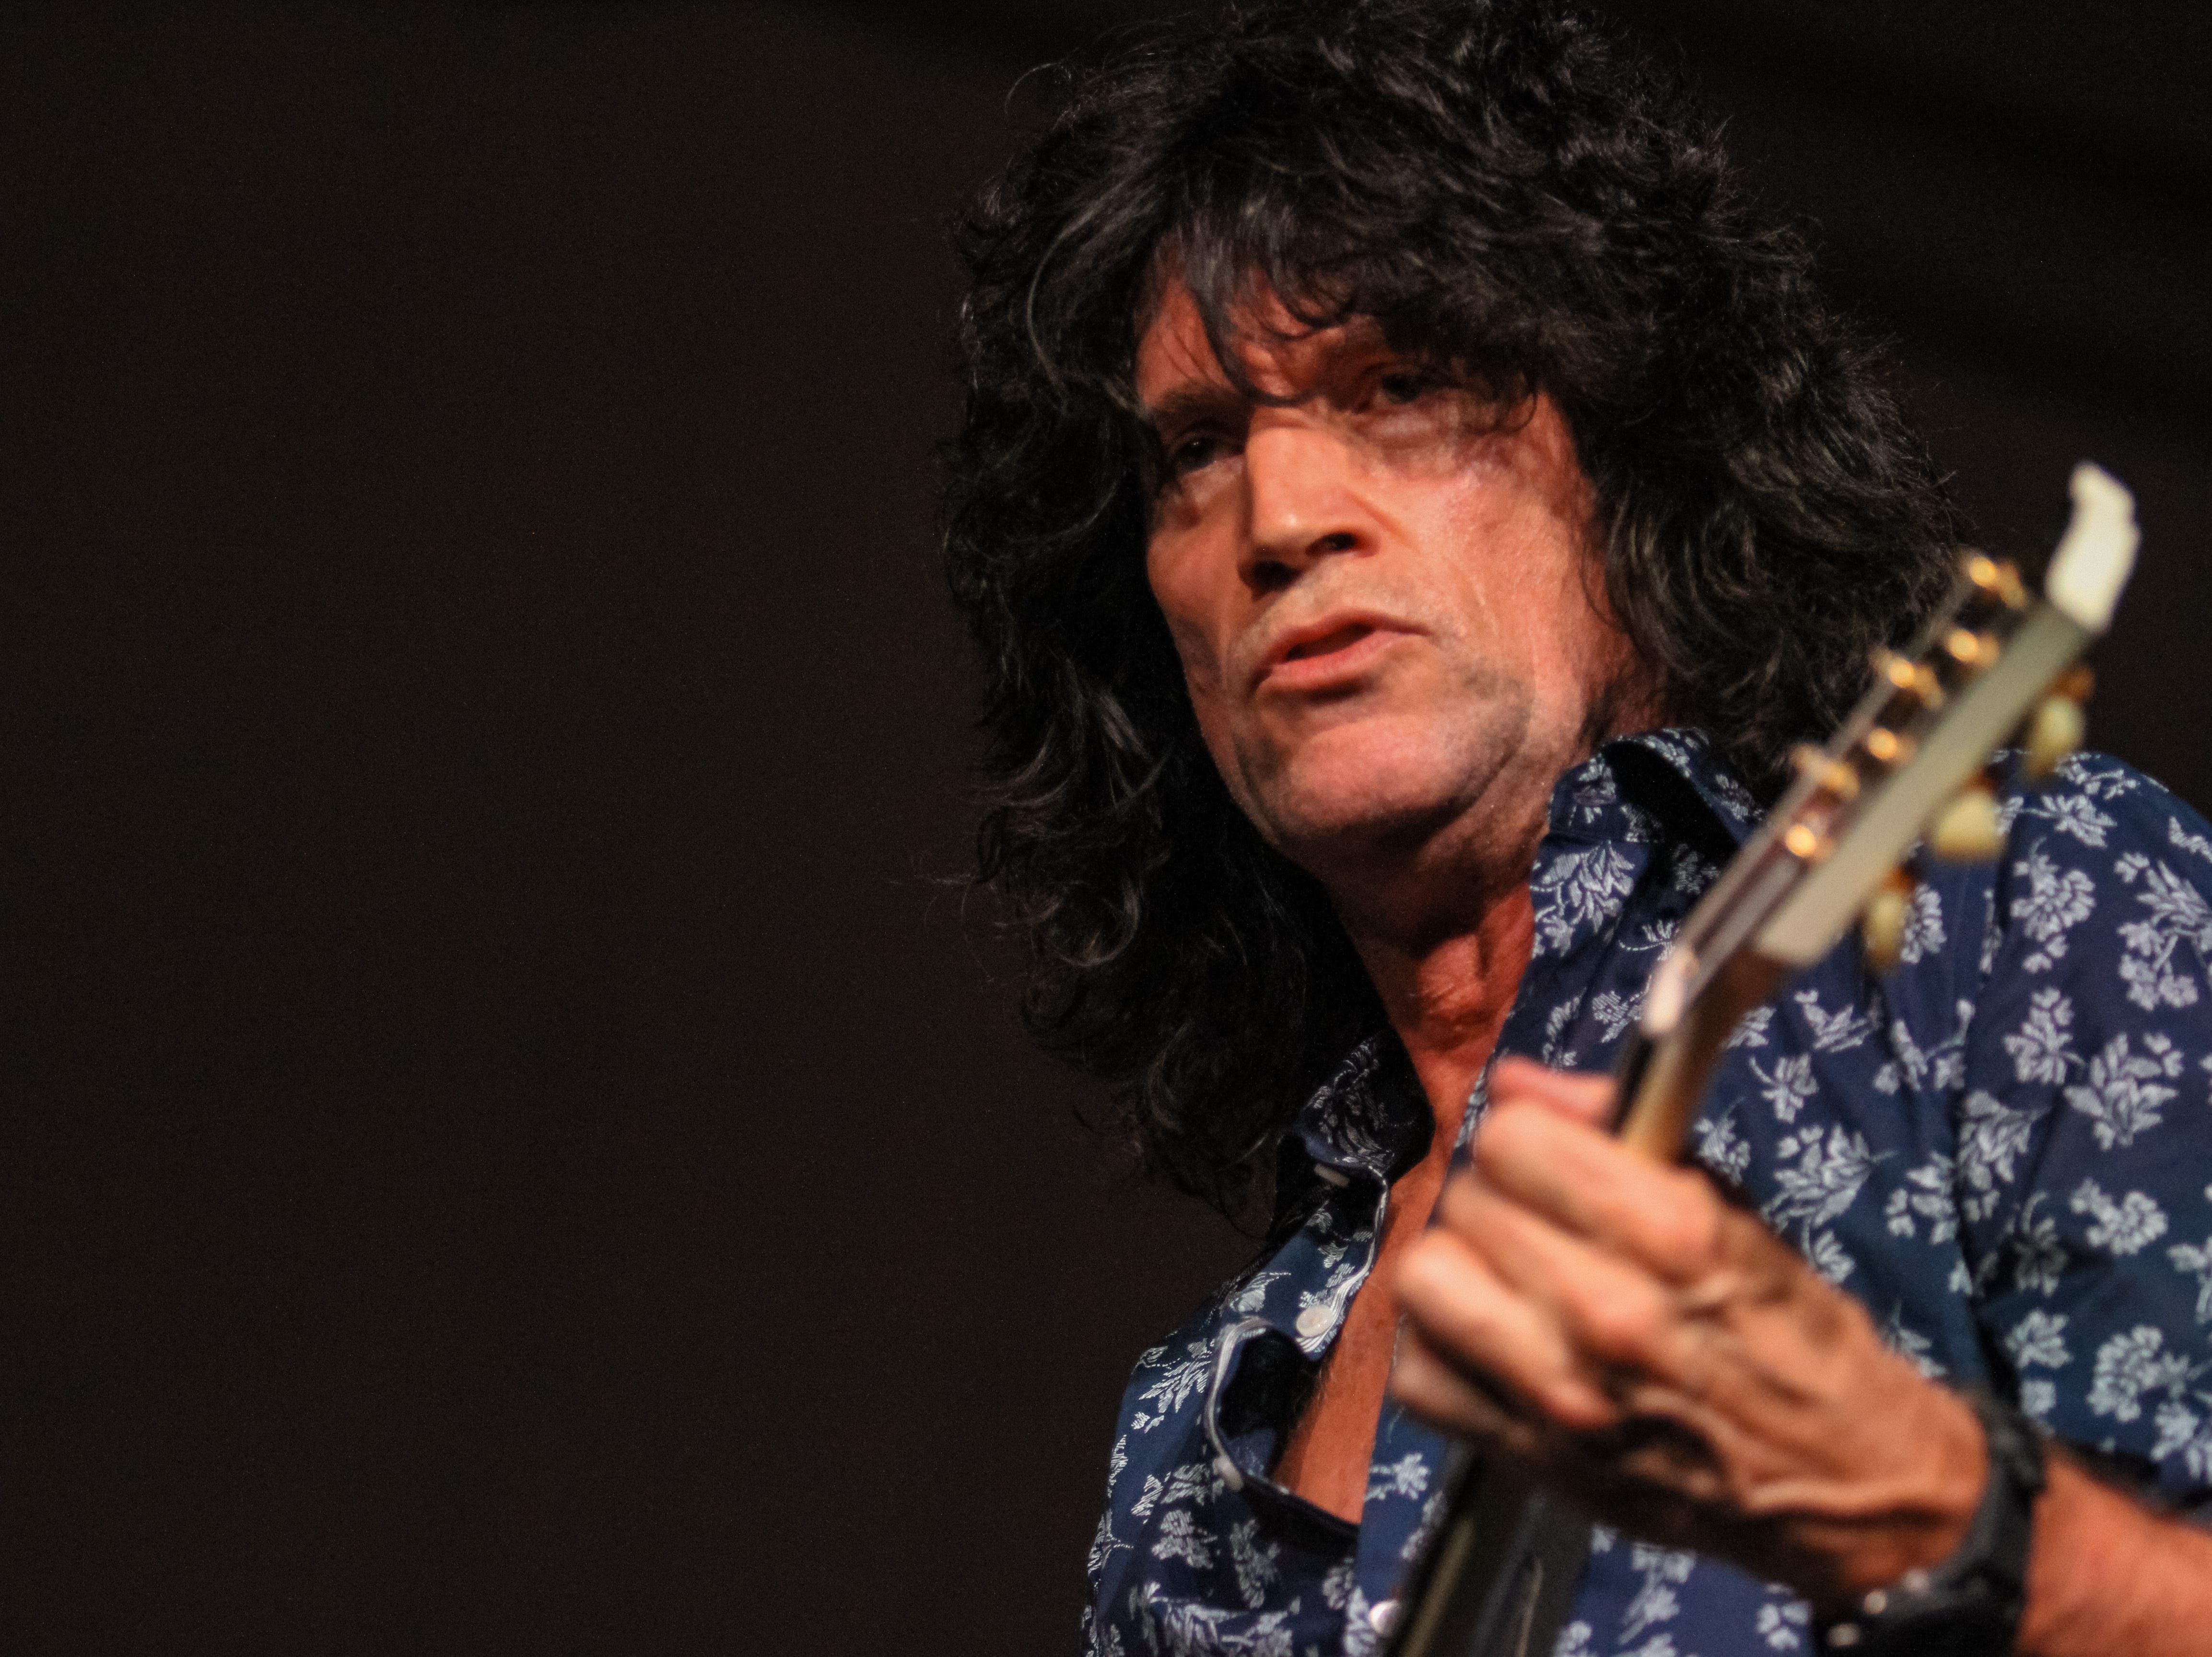 Tommy Thayer of Kiss preforms atAlice Cooper's Rock & Roll Fundraising Bash  at the Las Sendas Golf Club in Mesa on April 27, 2019.